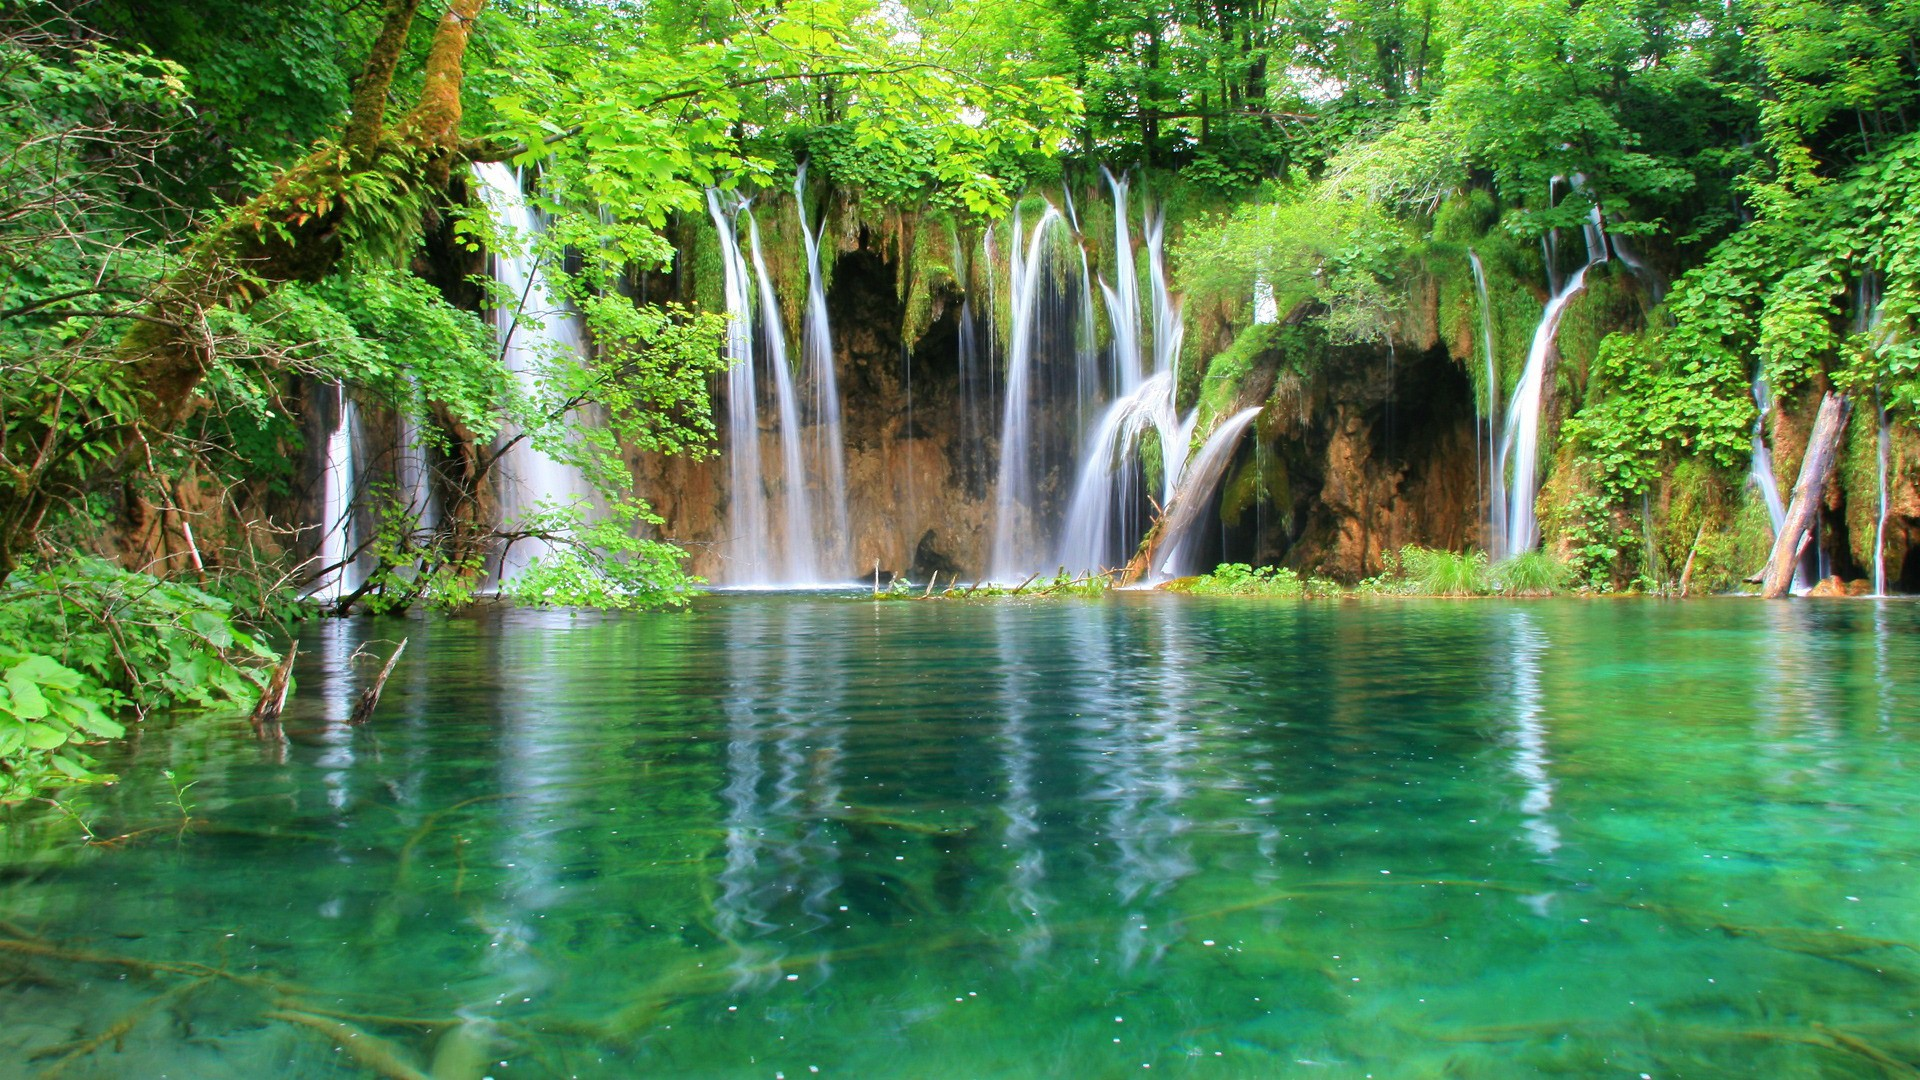 Waterfall Nature Wallpaper